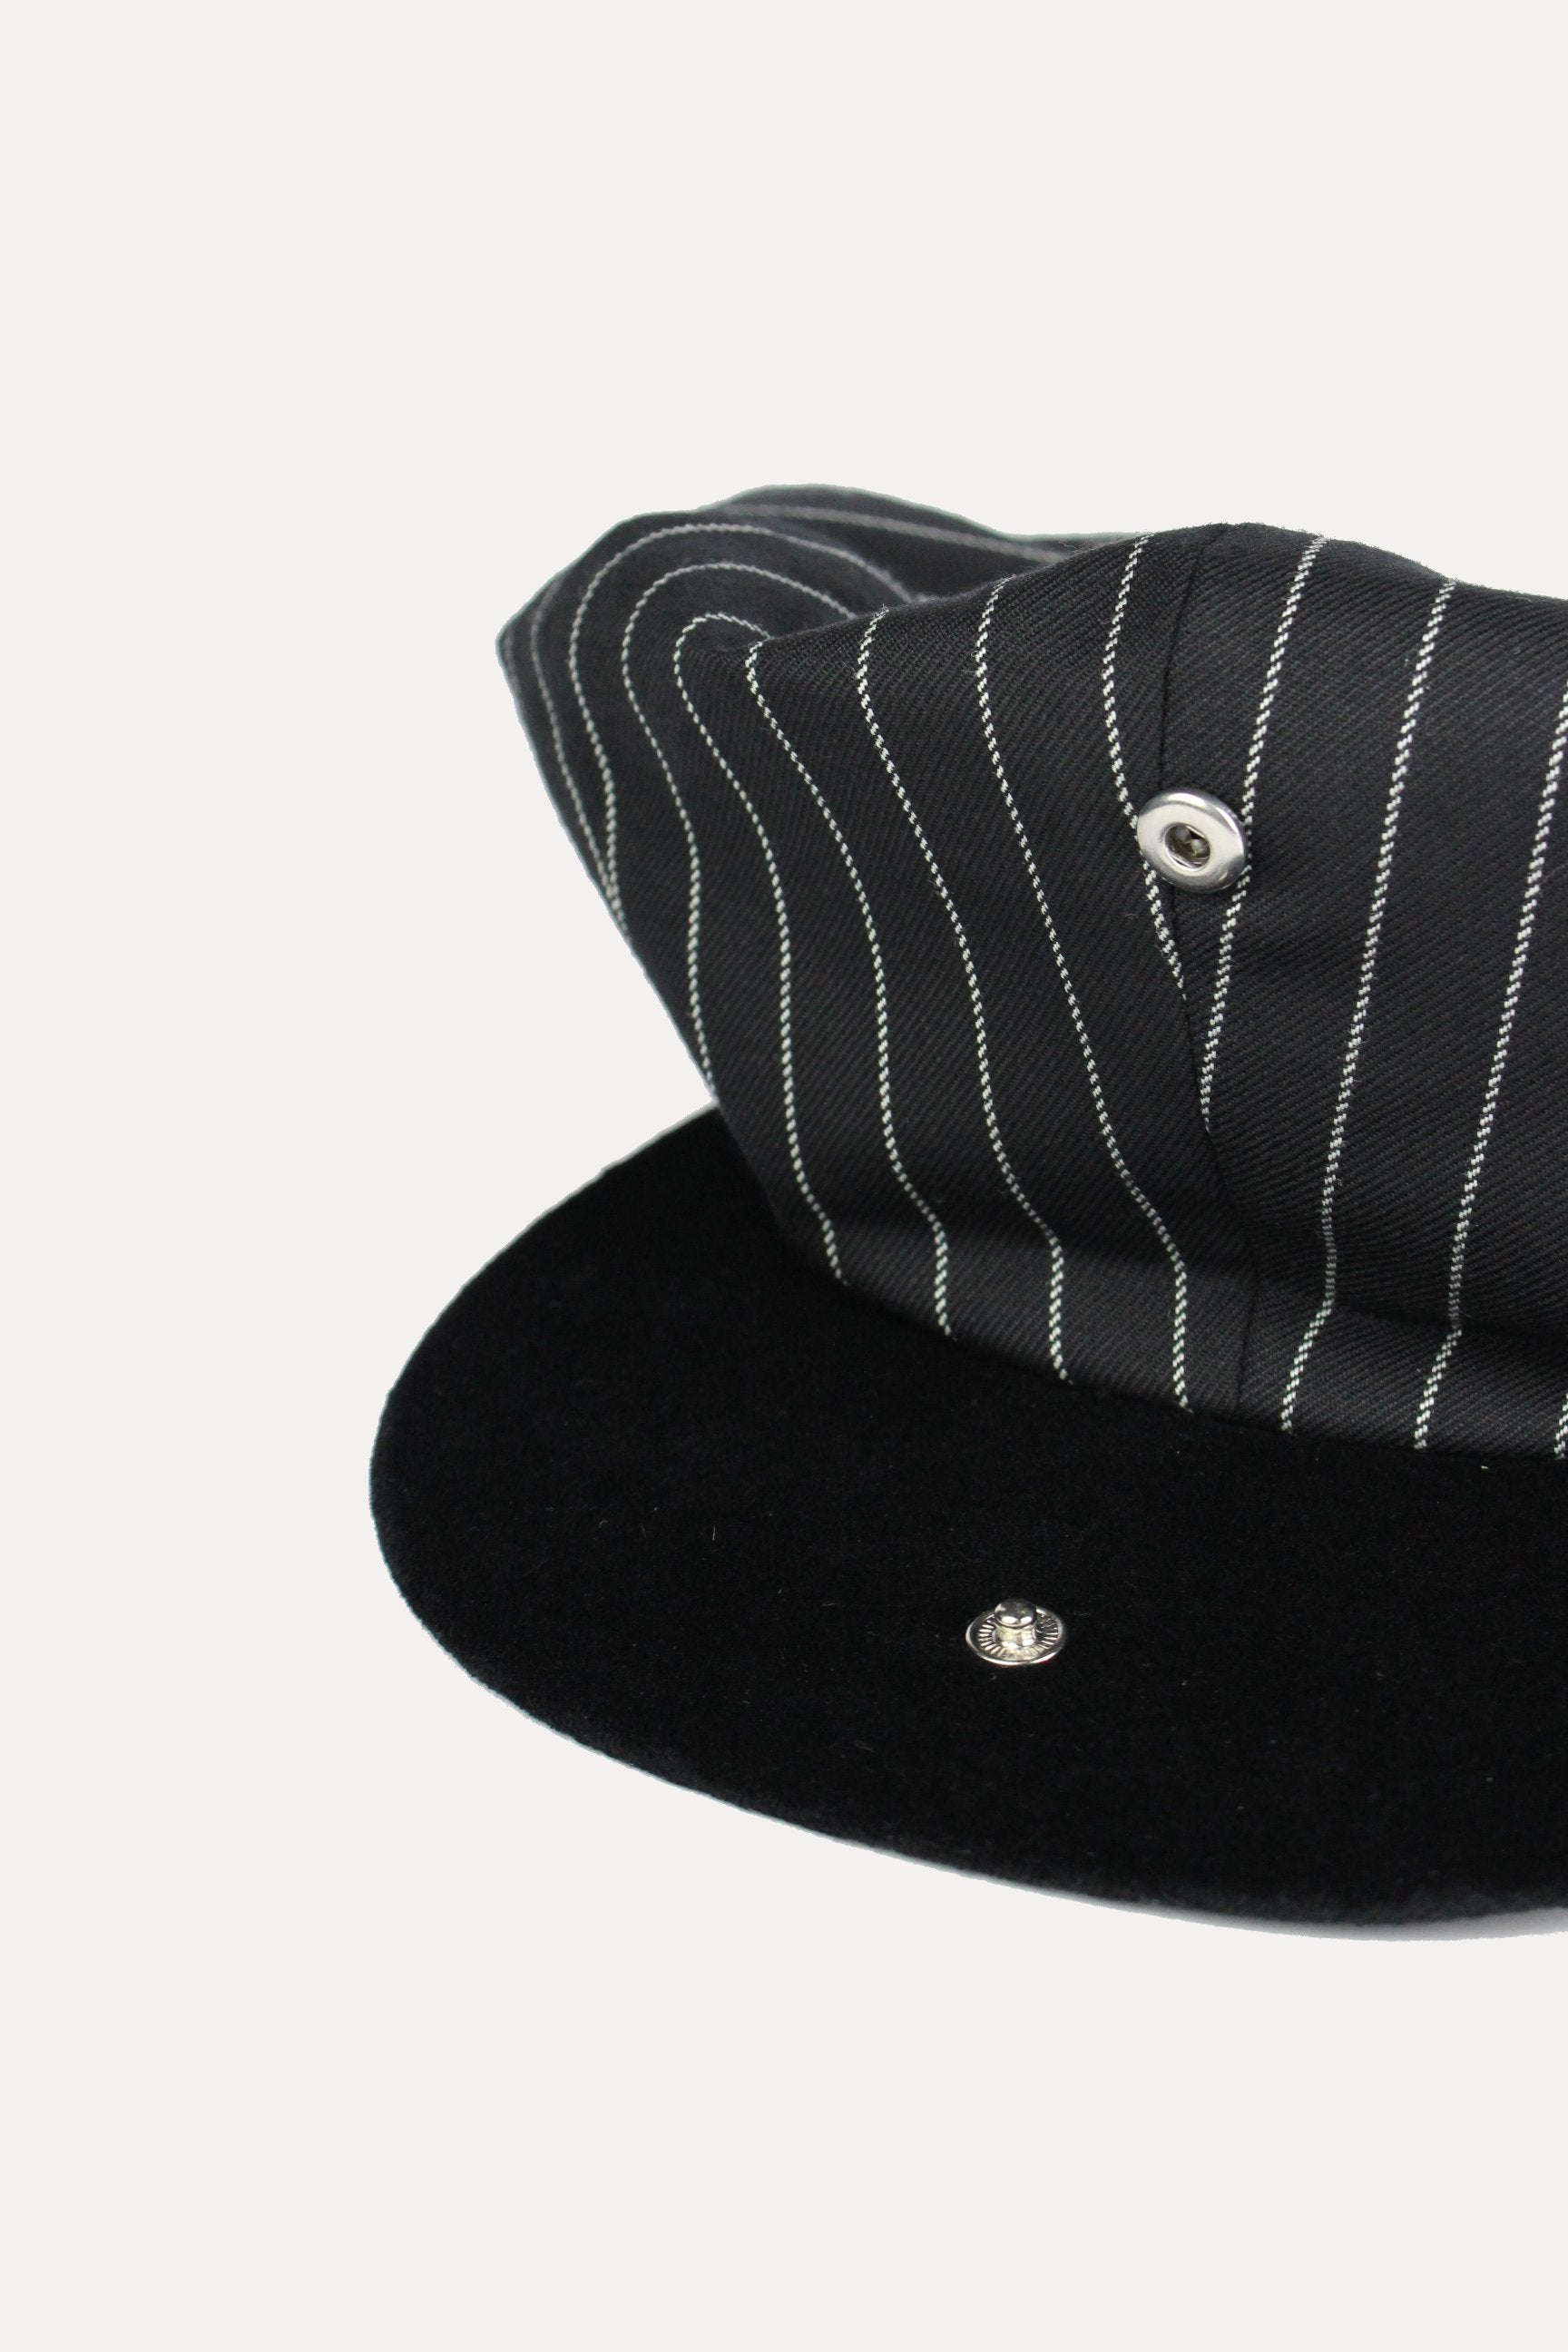 CLYDE - BLACK ROPE STRIPE-hats-A Child Of The Jago